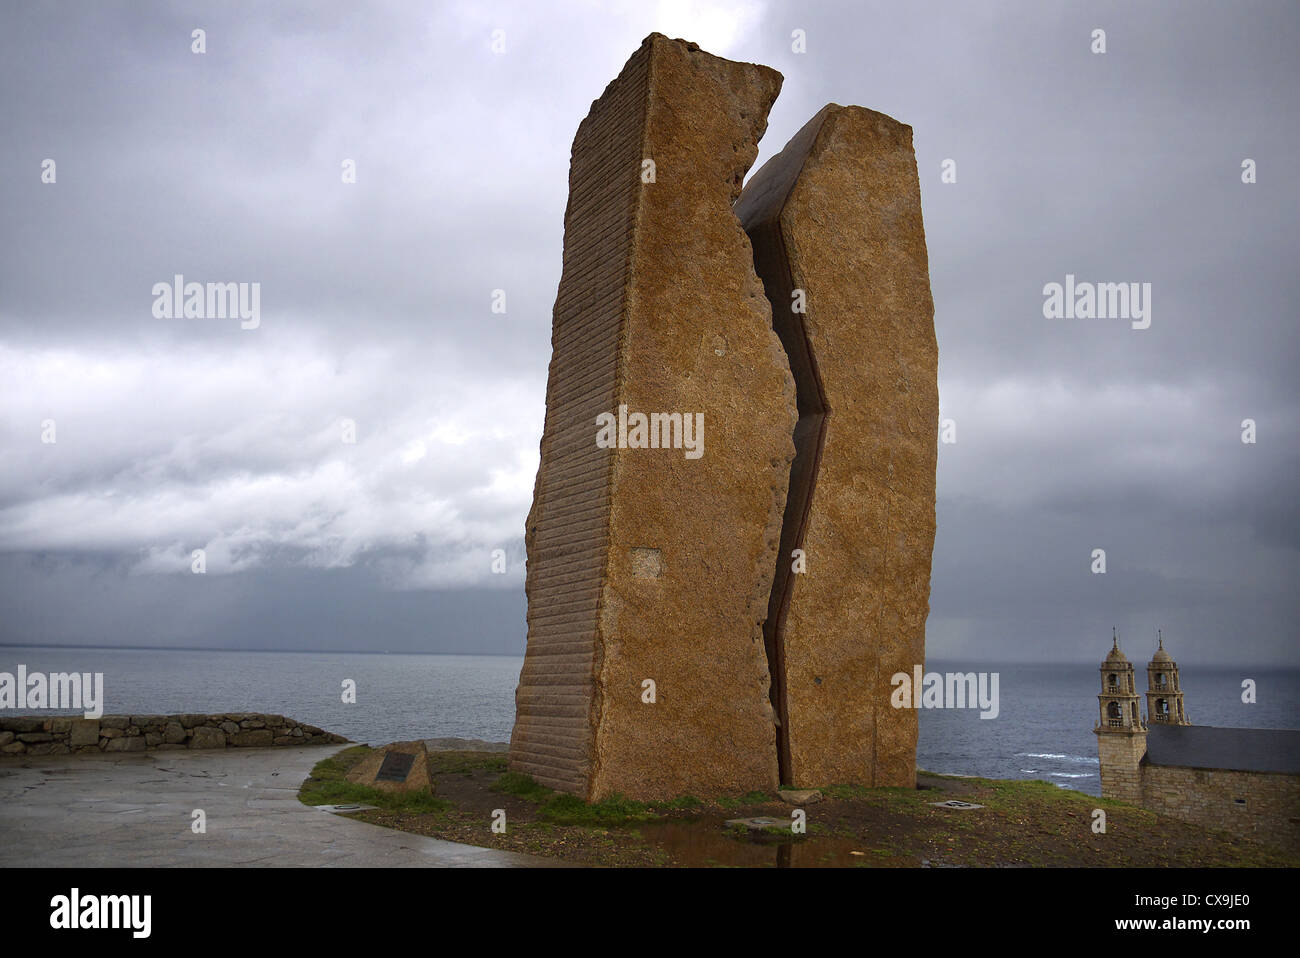 Monument to the Prestige oil spill in Muxia, Galicia, Spain. - Stock Image